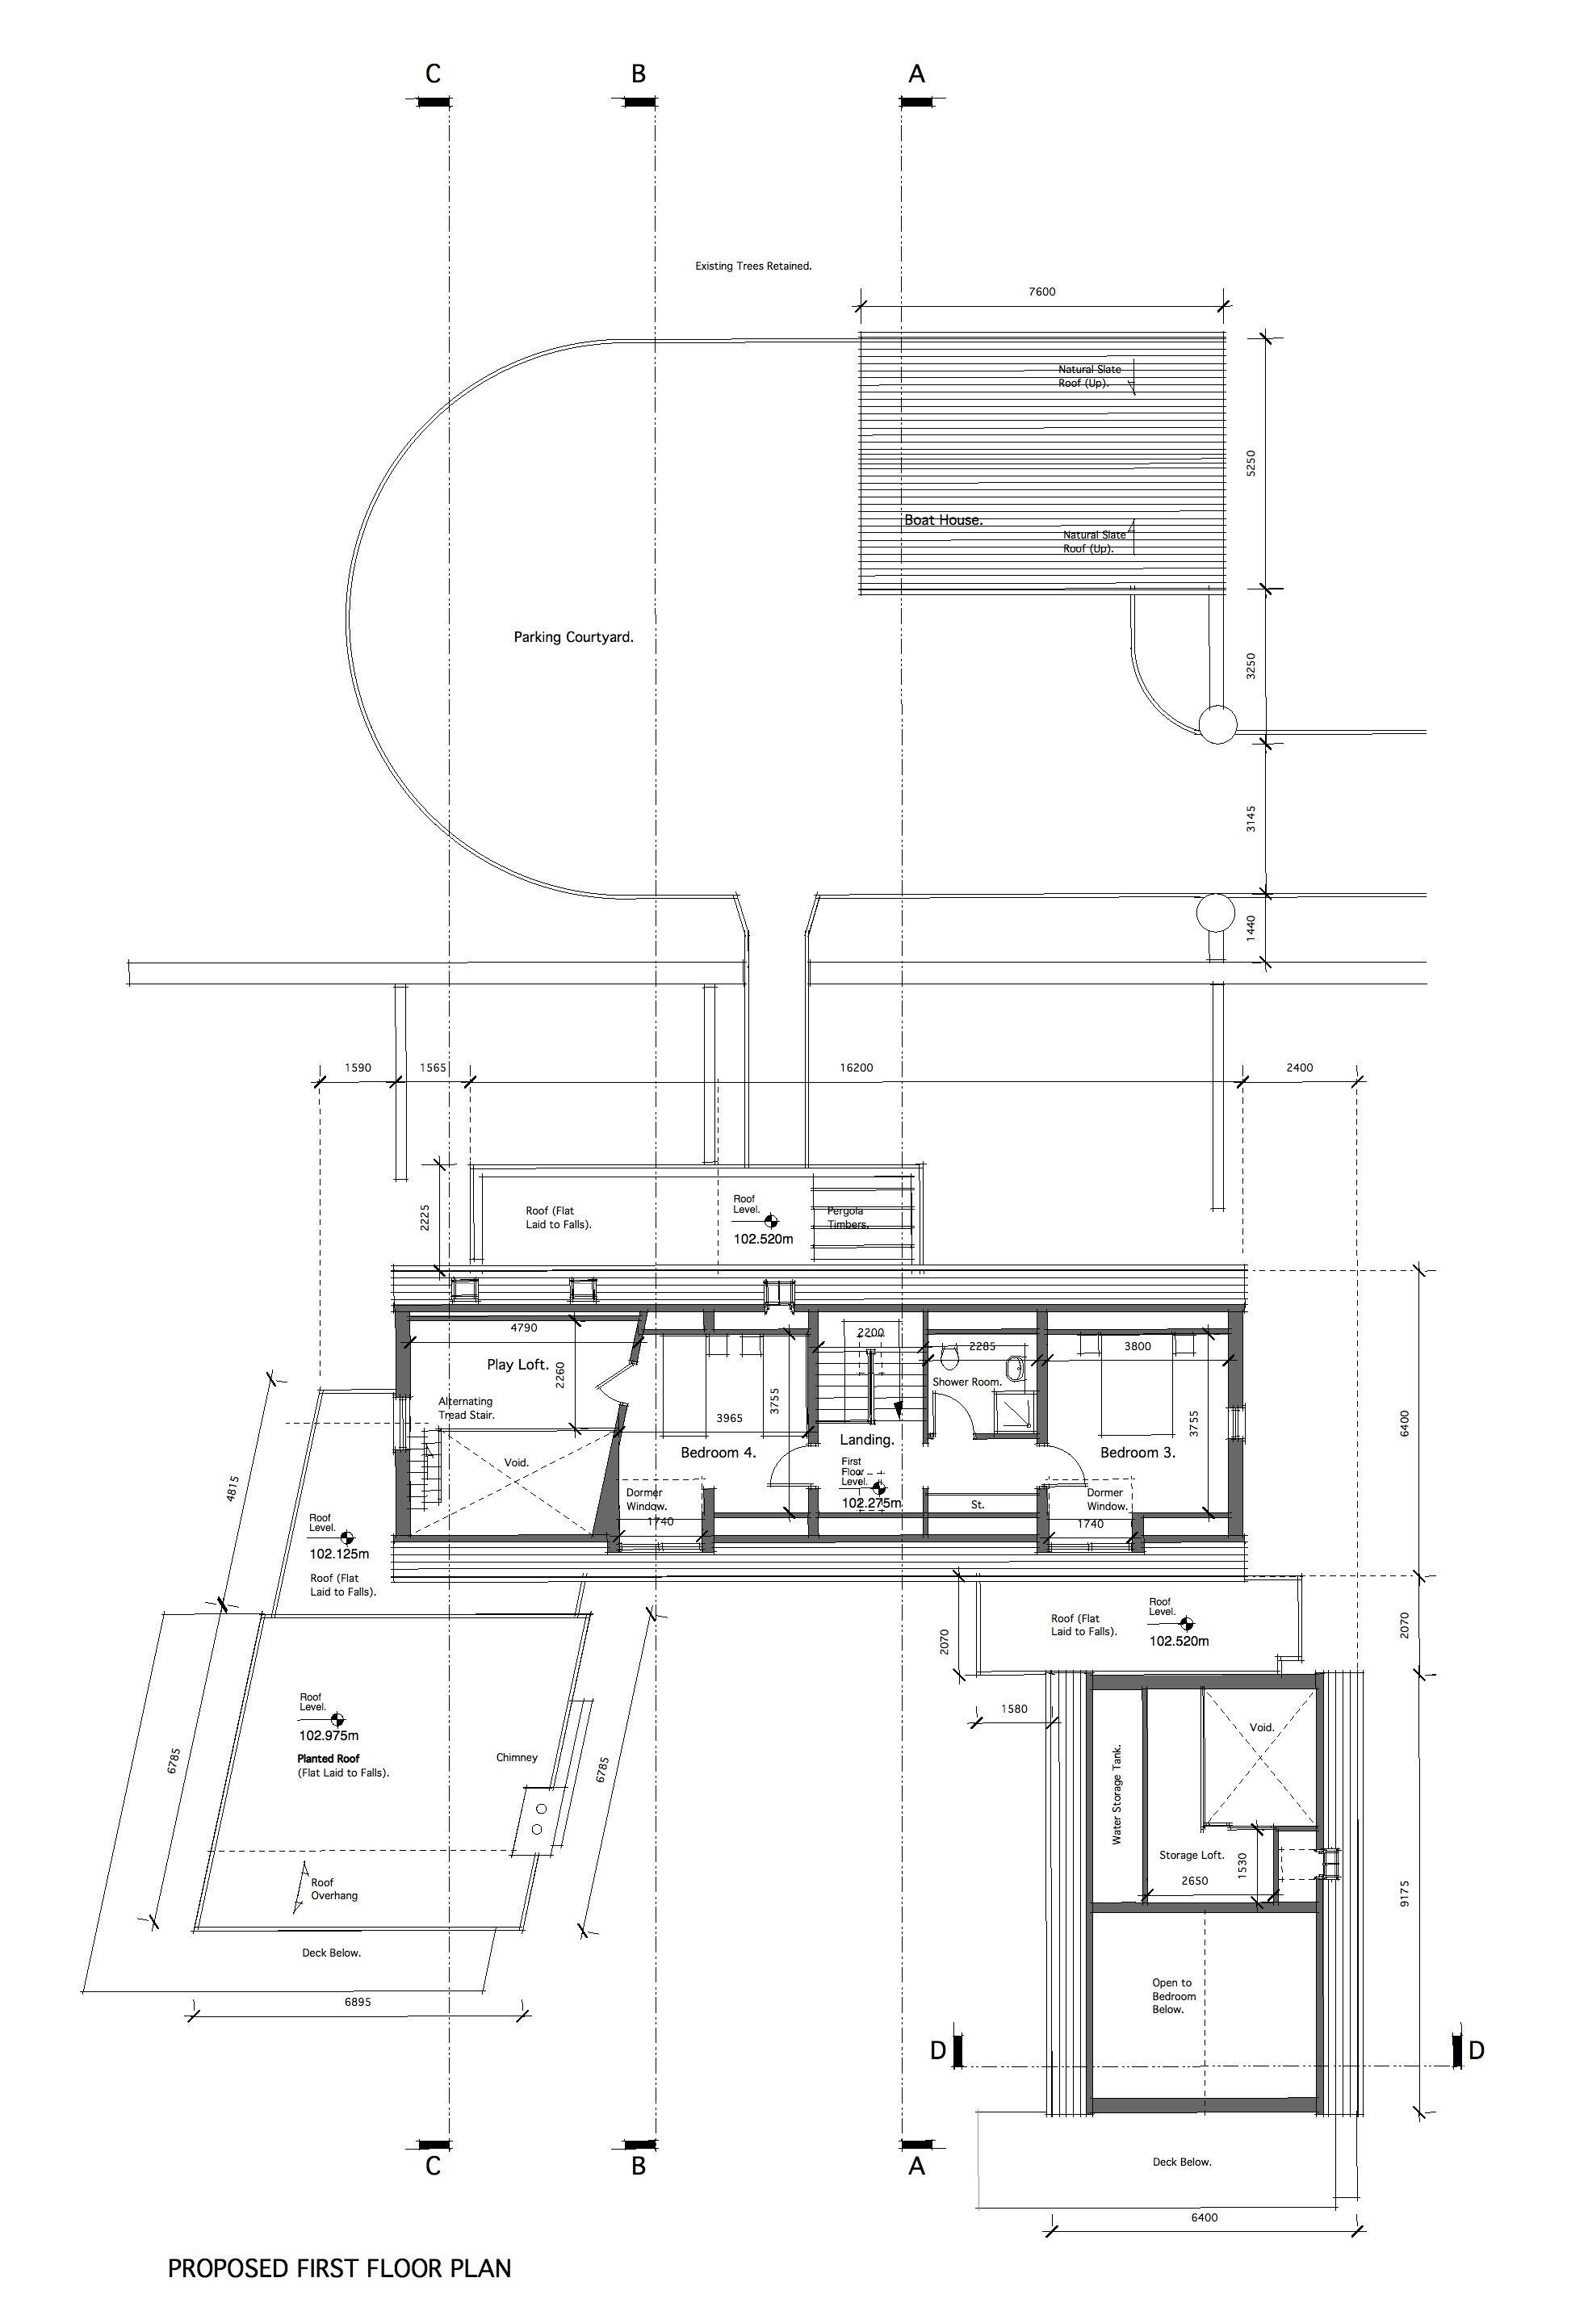 First Floor Plan - Planted Roof Over the Living Room.